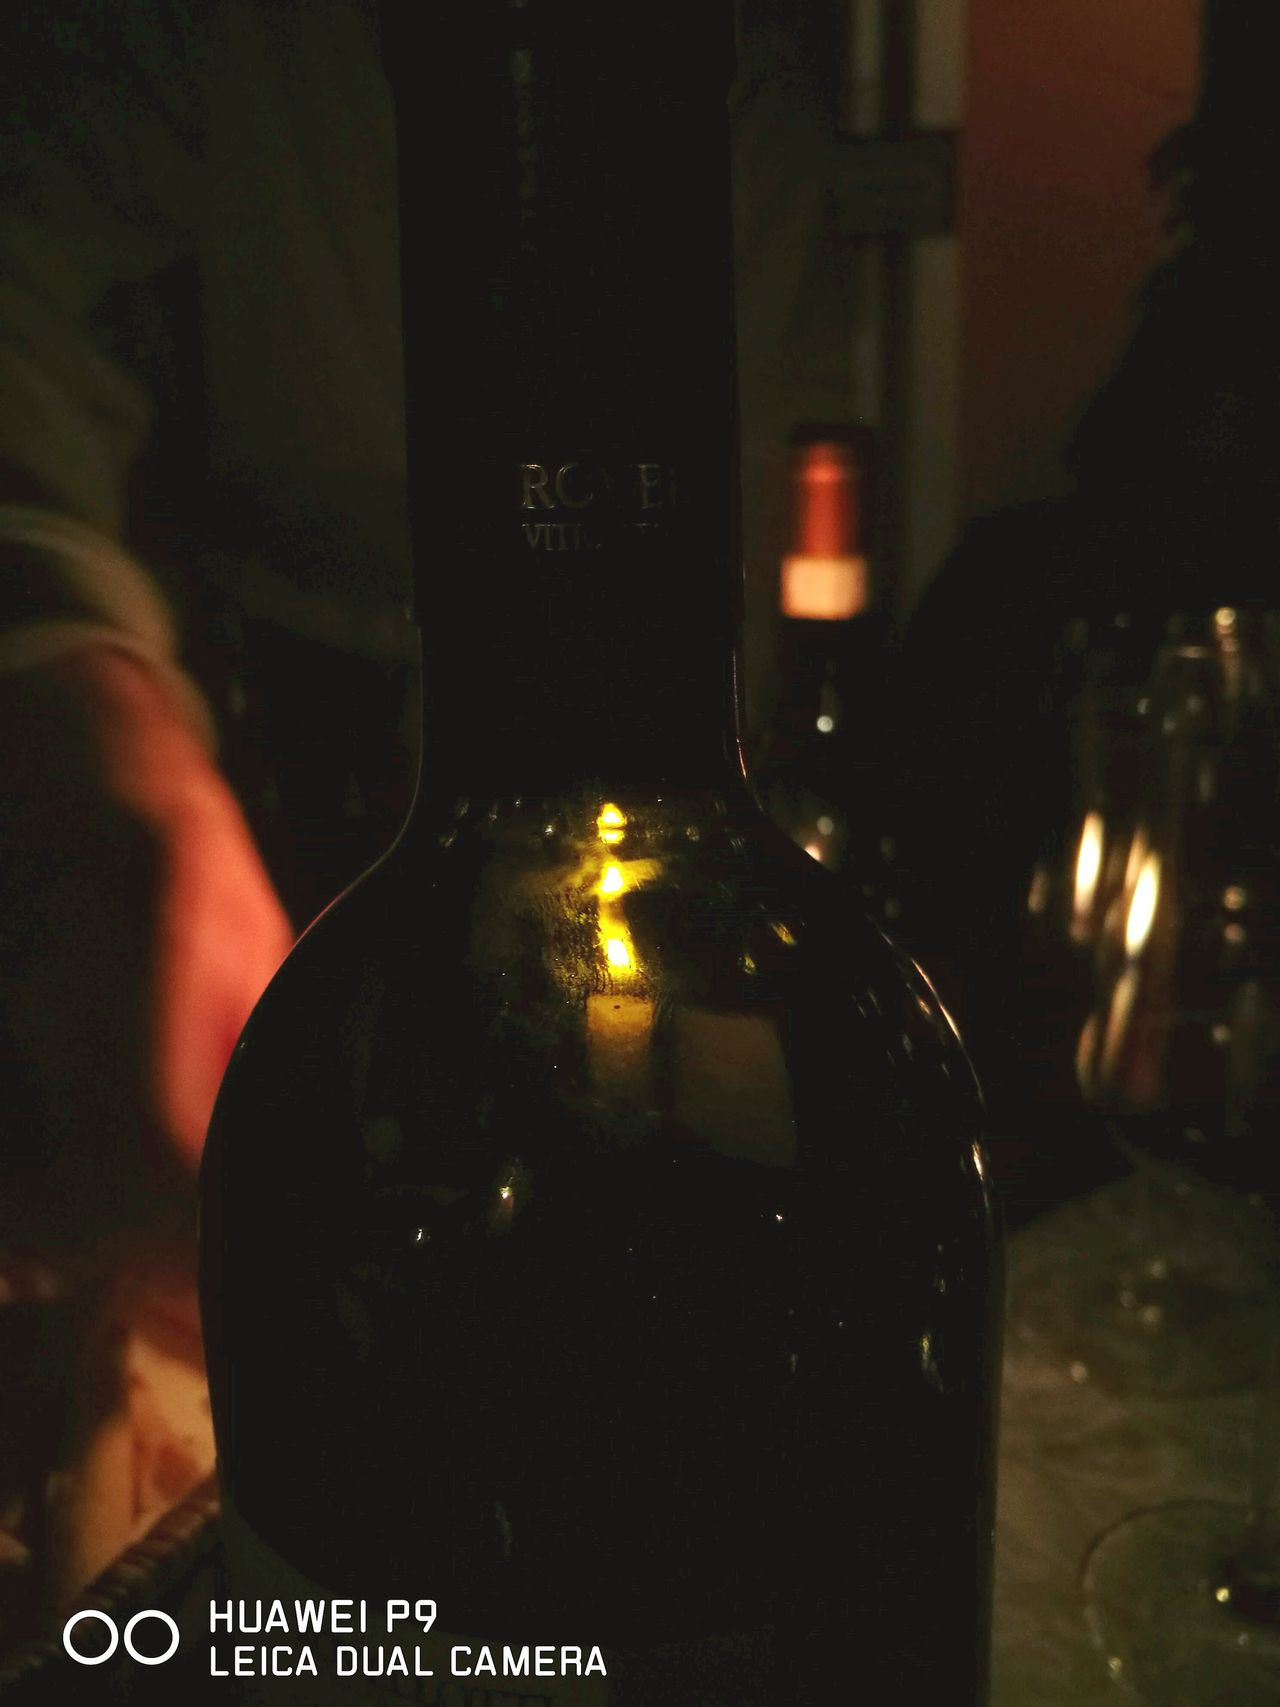 Wine Moments Wine Tasting Wine Bottle Rovellotti Candlelight Close-up HuaweiP9 Leicacamera